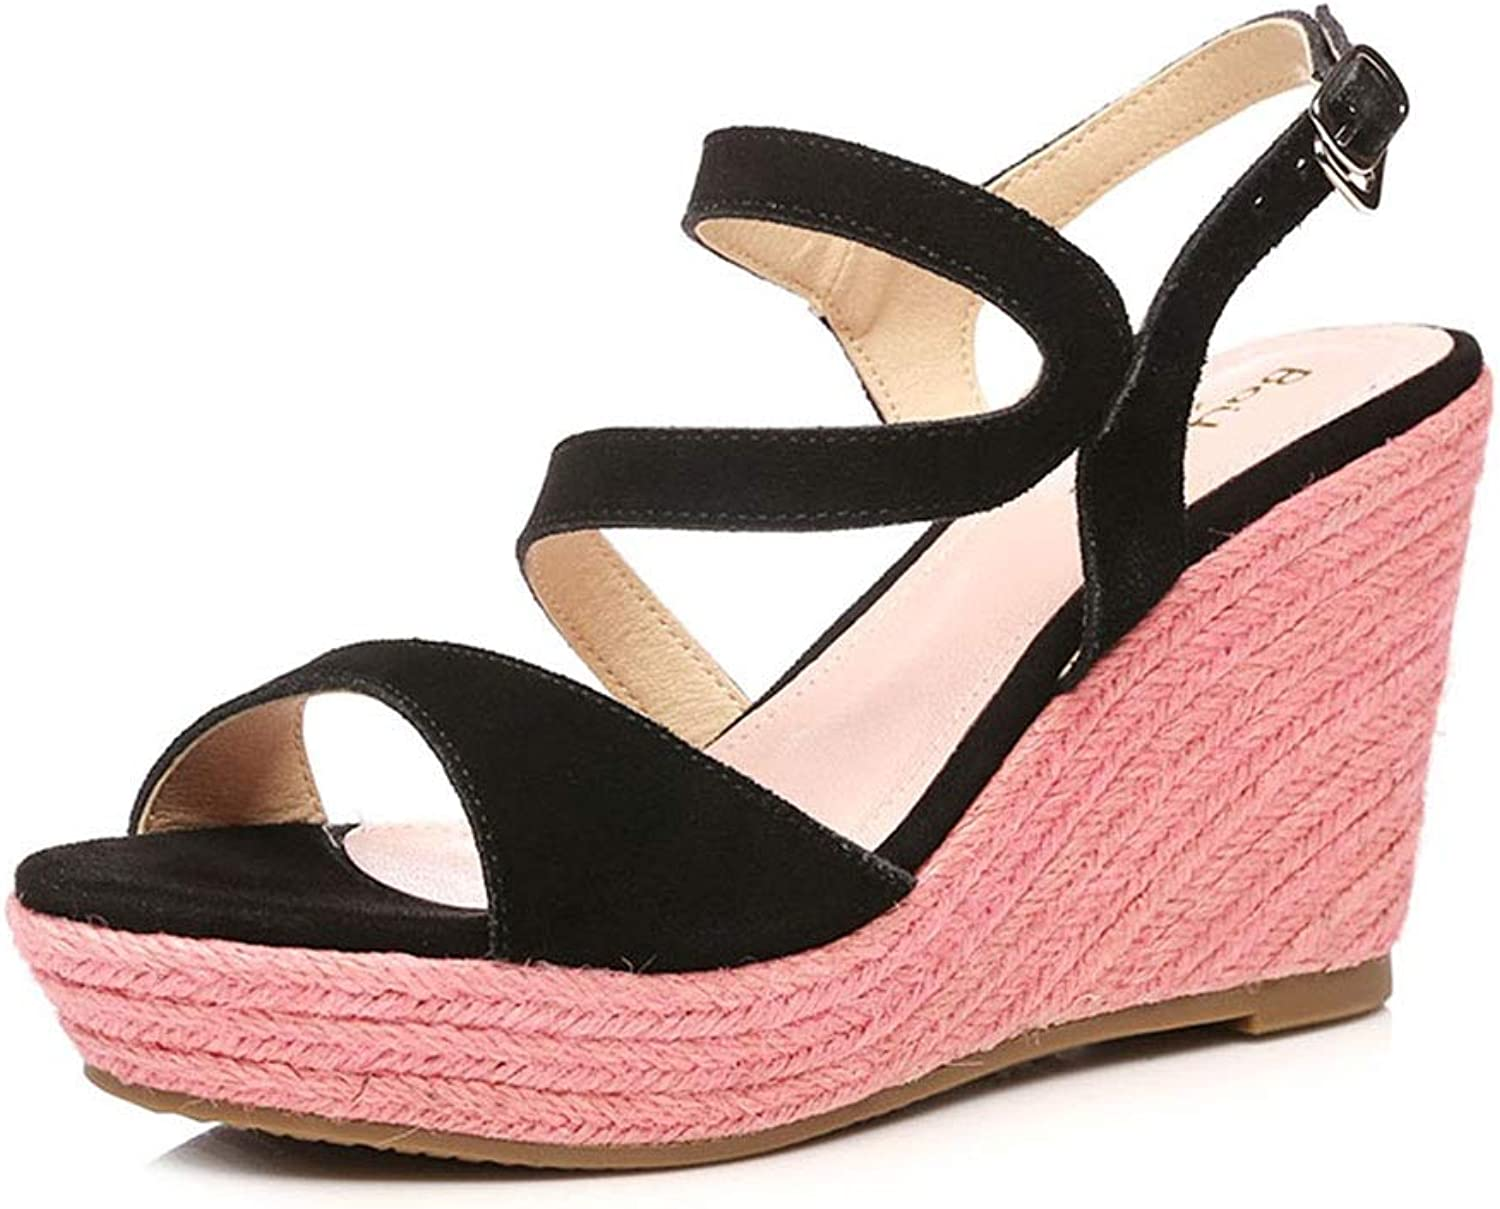 Sandals Sandals Summer New Sandals Female Wedge with Matte Leather color Weaving Women's shoes, High Heel 9cm (color   Pink, Size   38)